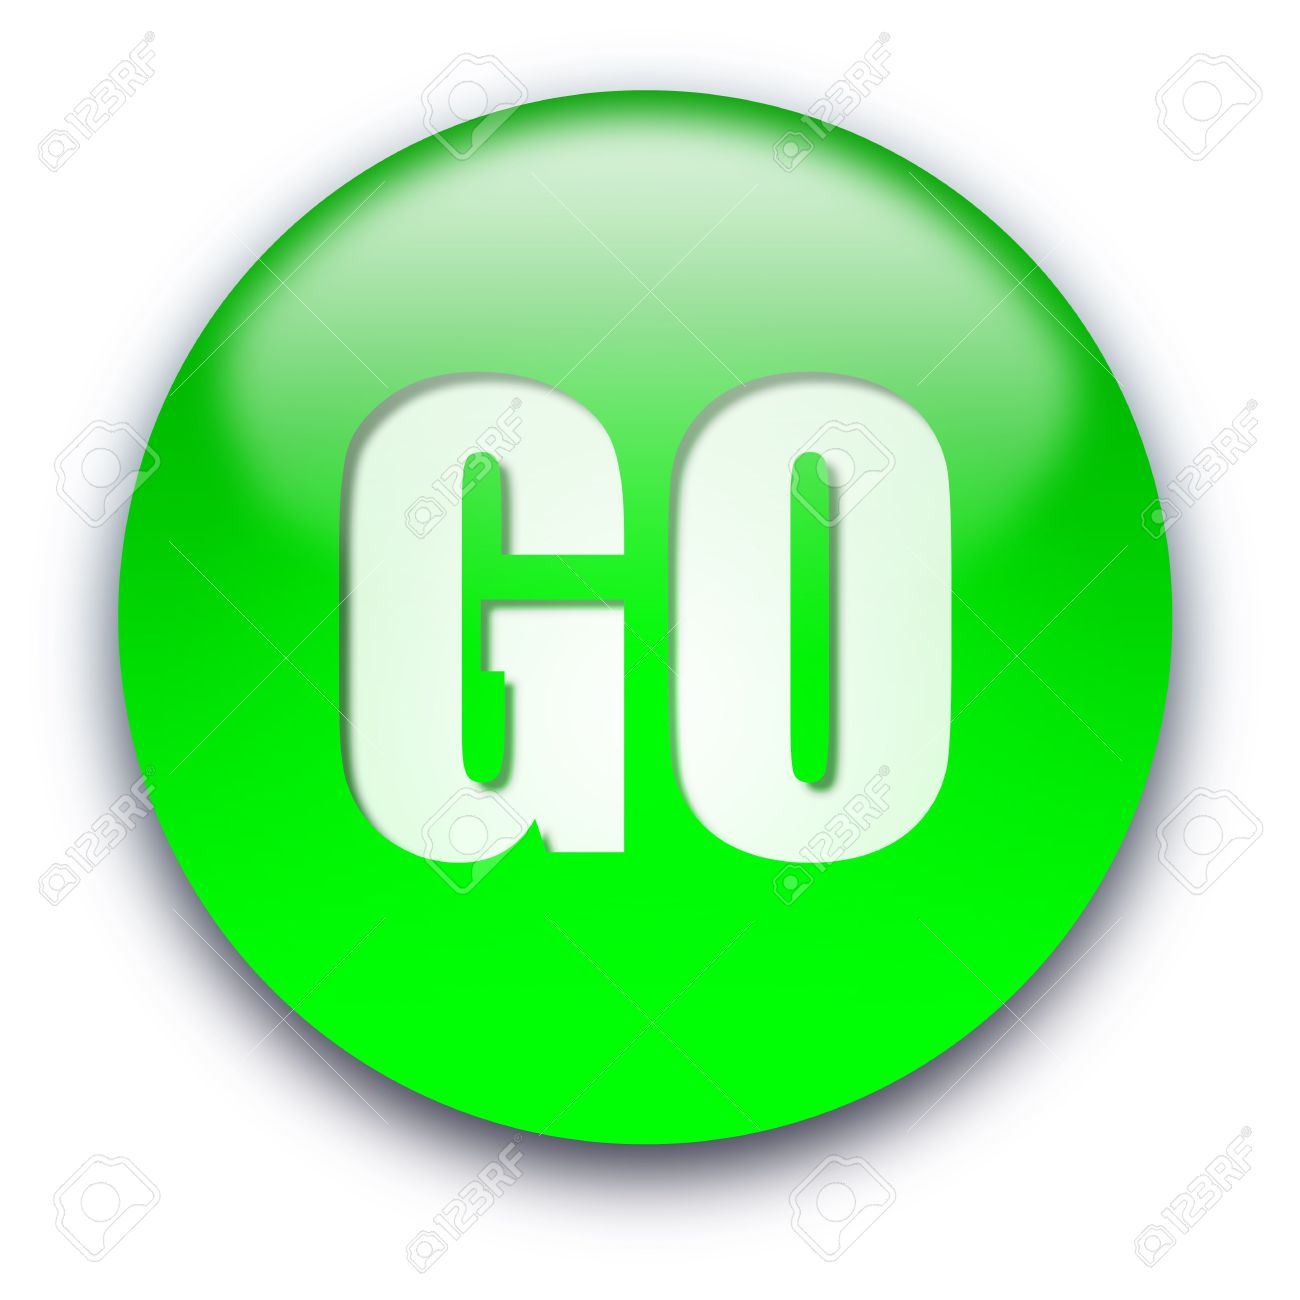 Green Glossy Go Button Isolated Over White Background Stock Photo